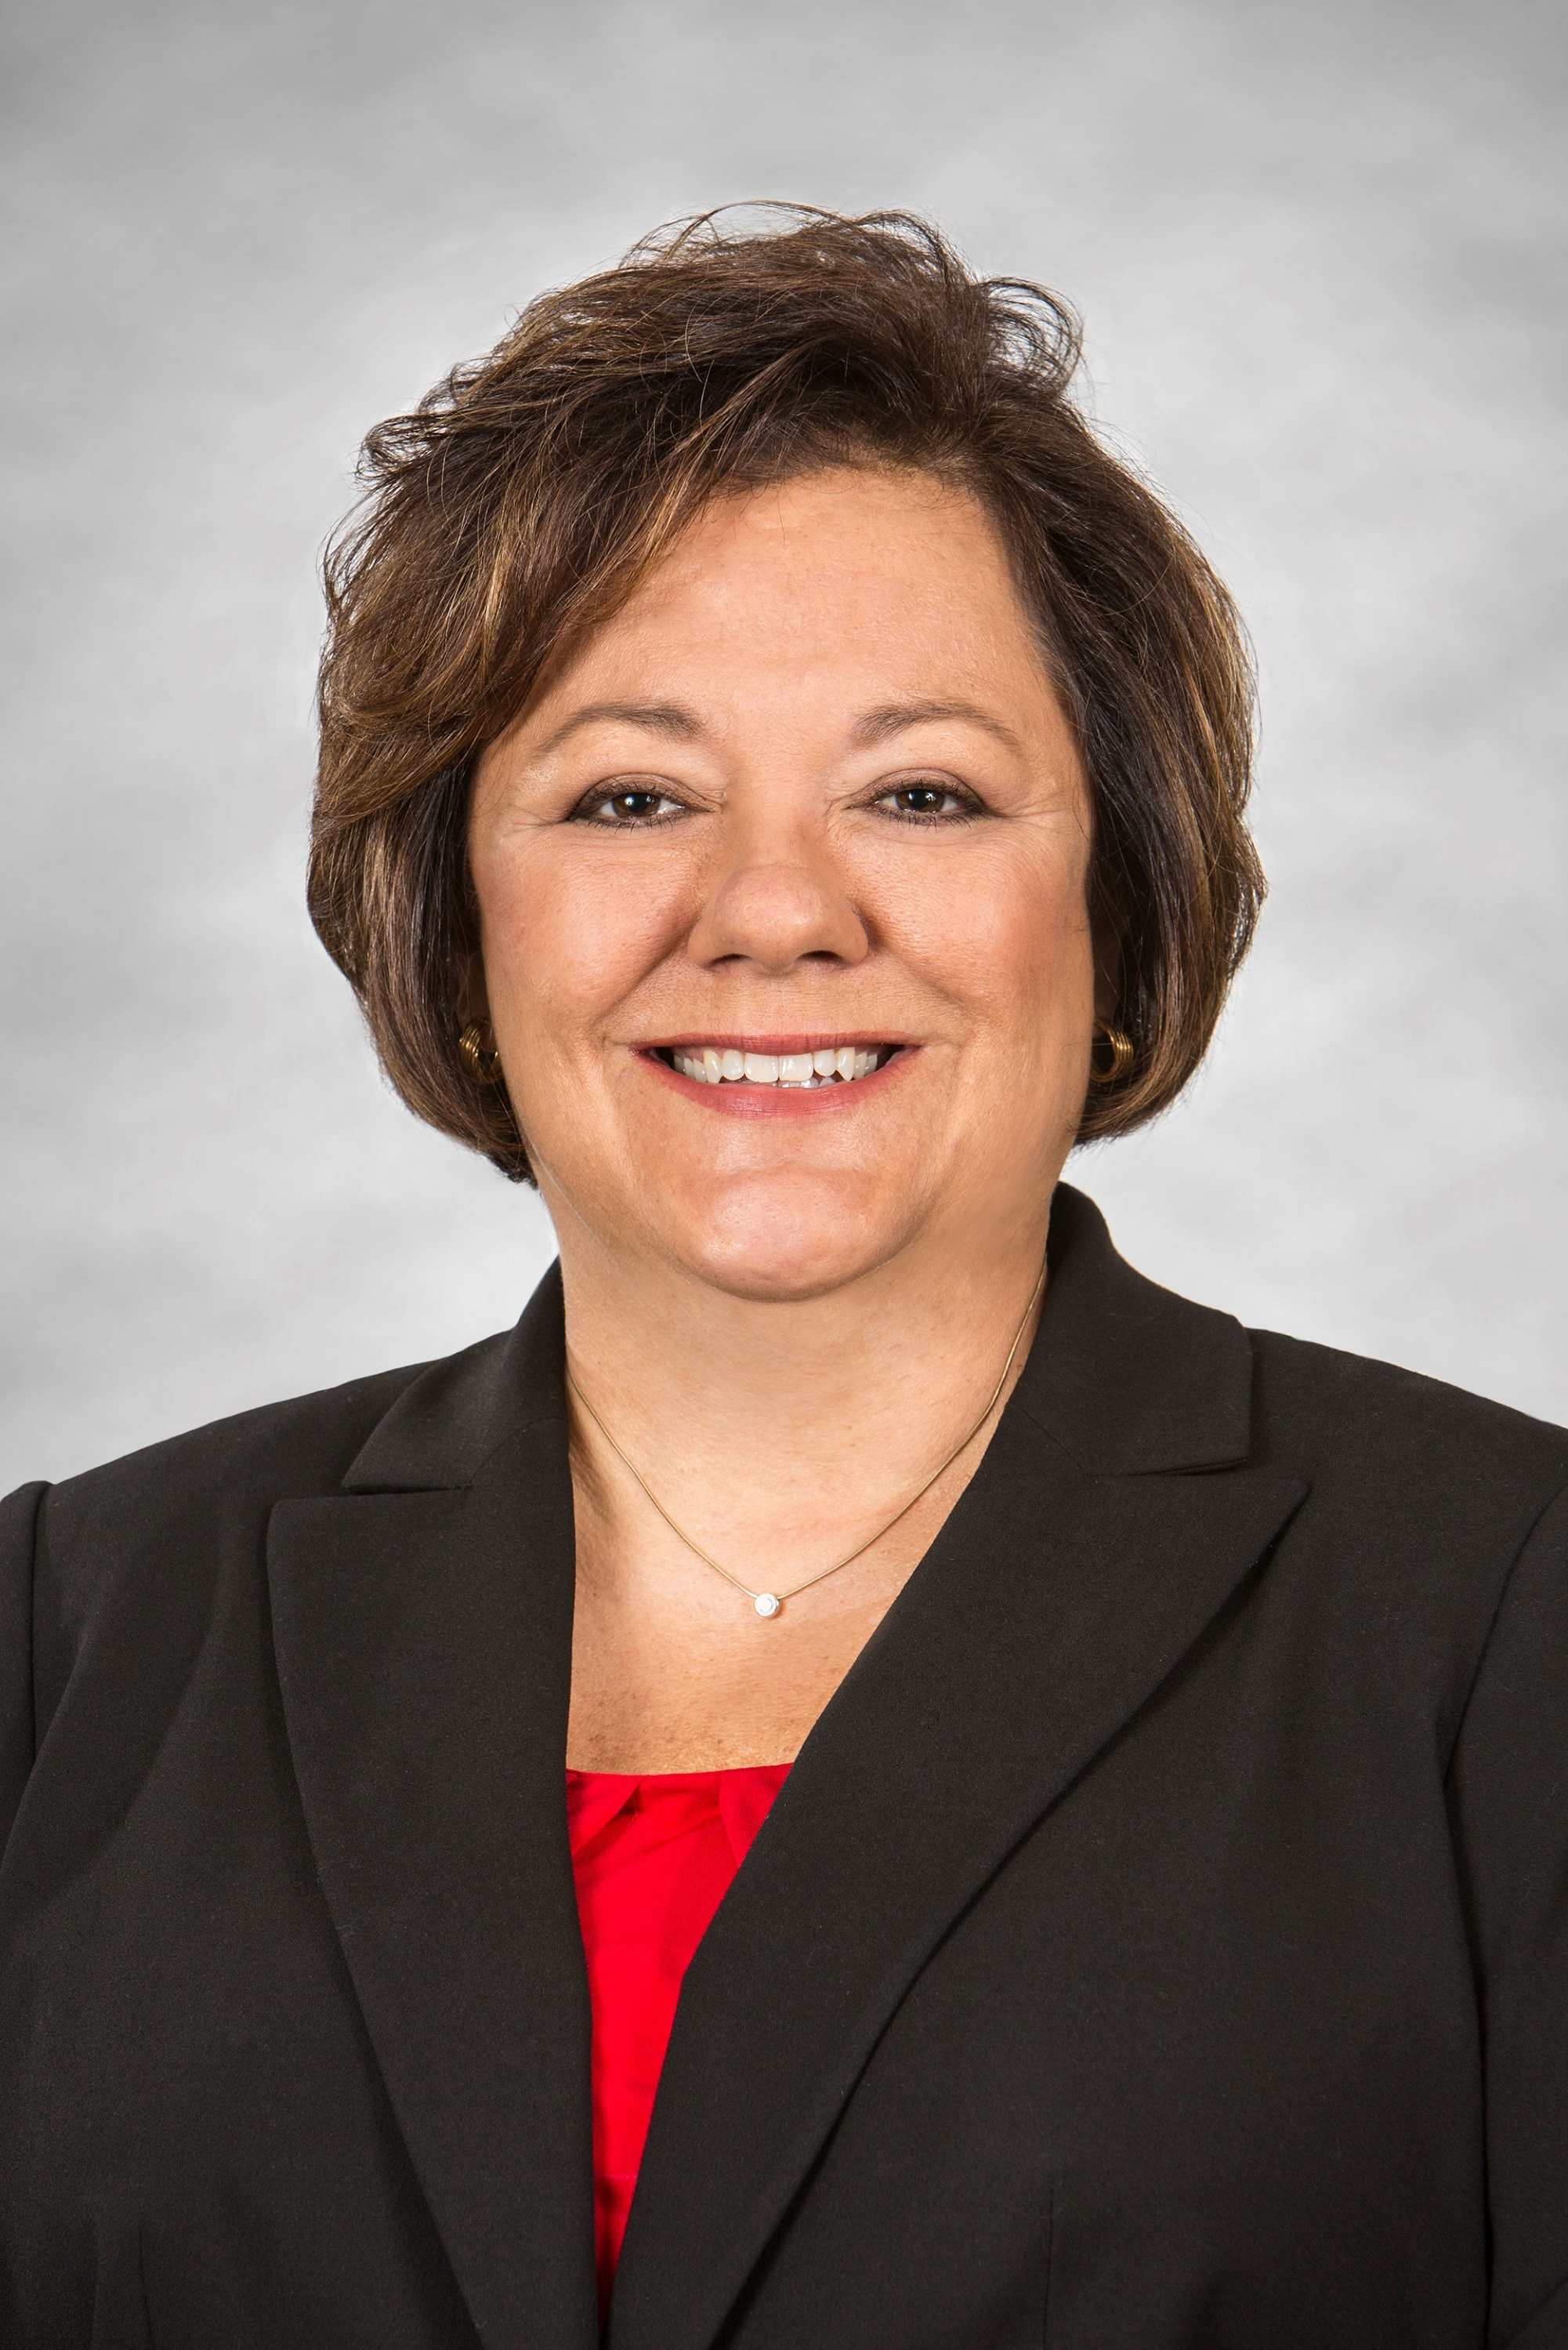 Cheryl Rieves, Chief Nursing Officer, Mercy Health - Lorain